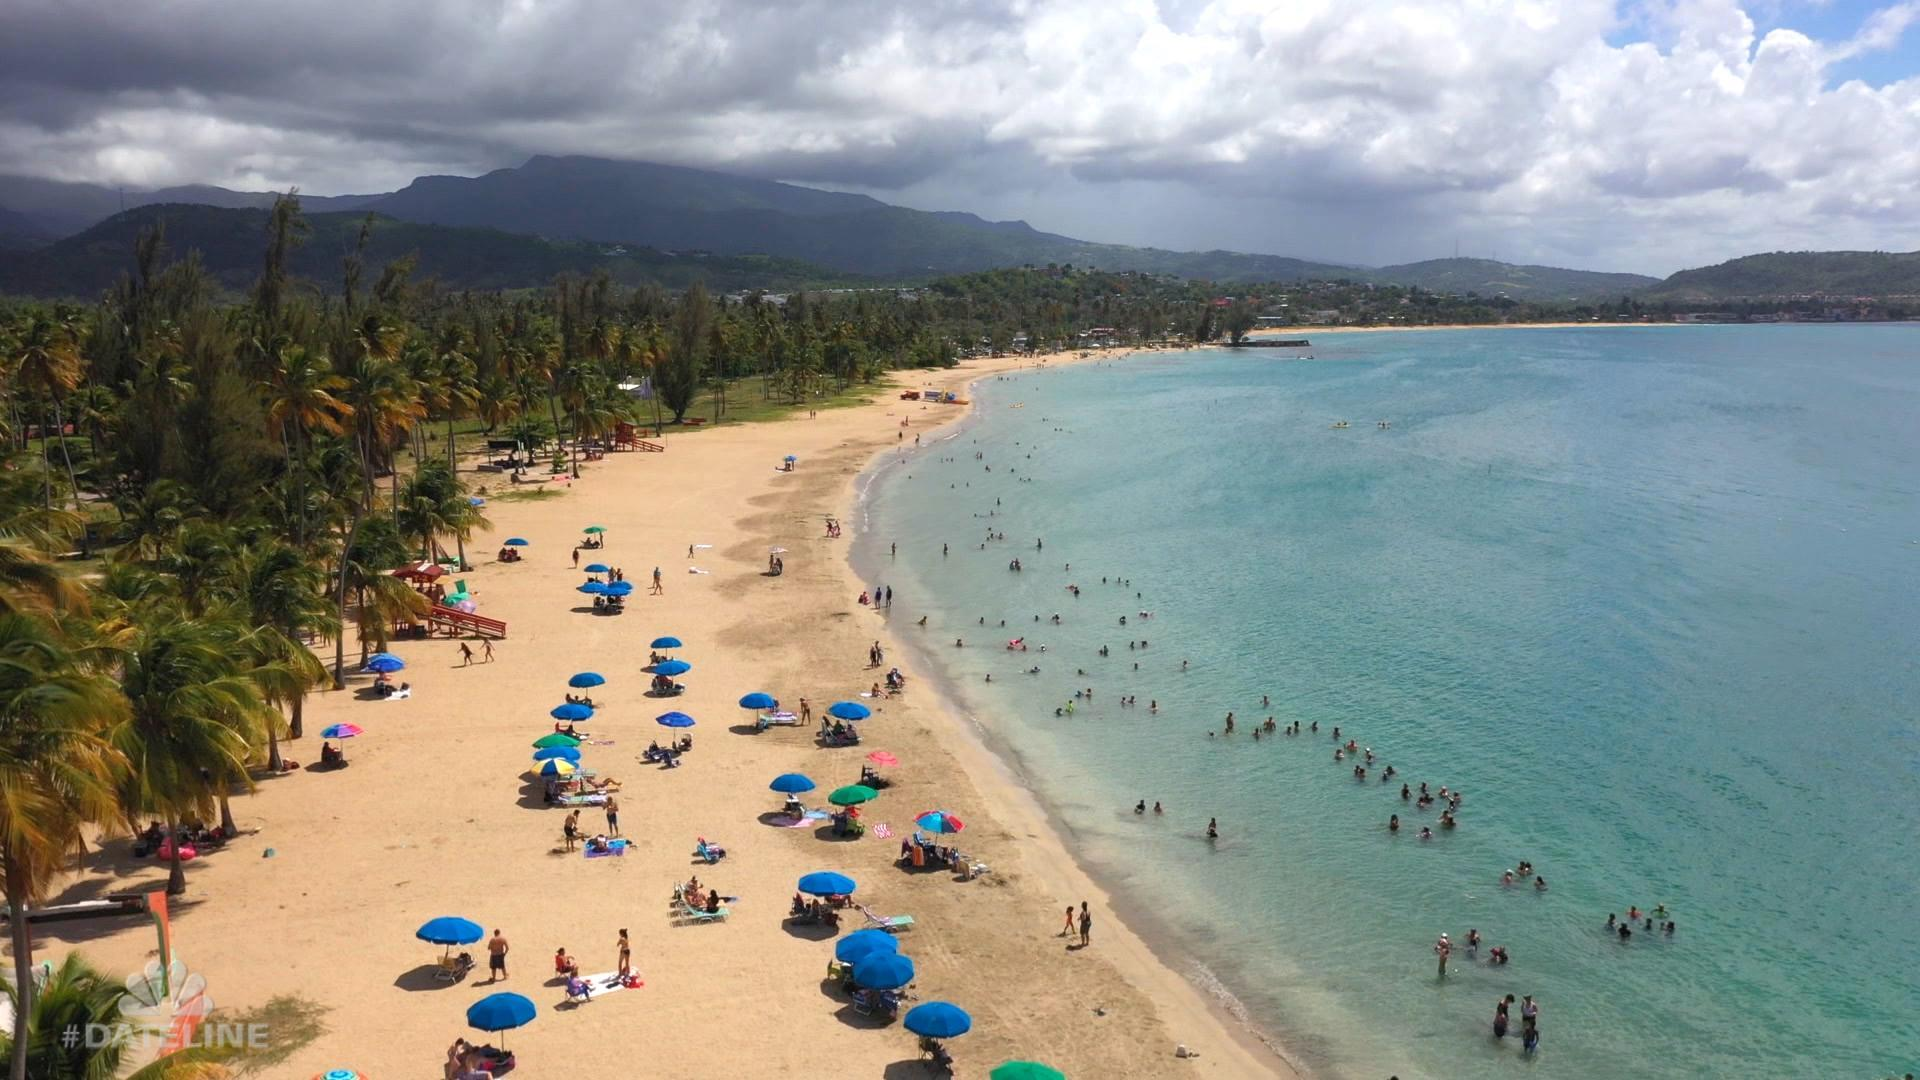 A Postcard from the Field: Luquillo Beach, Puerto Rico